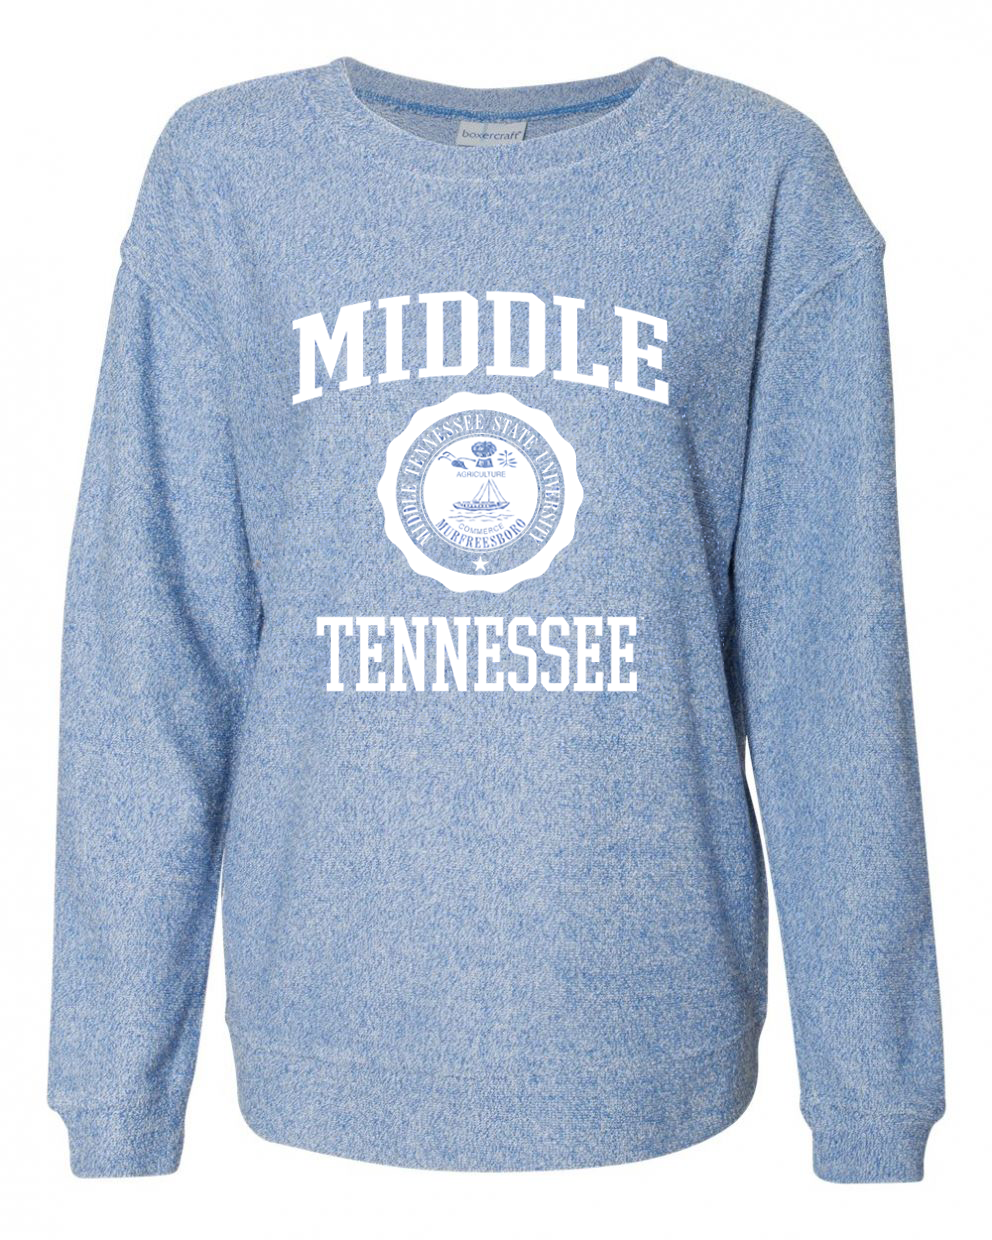 Middle Tennessee Seal Cozy Crew